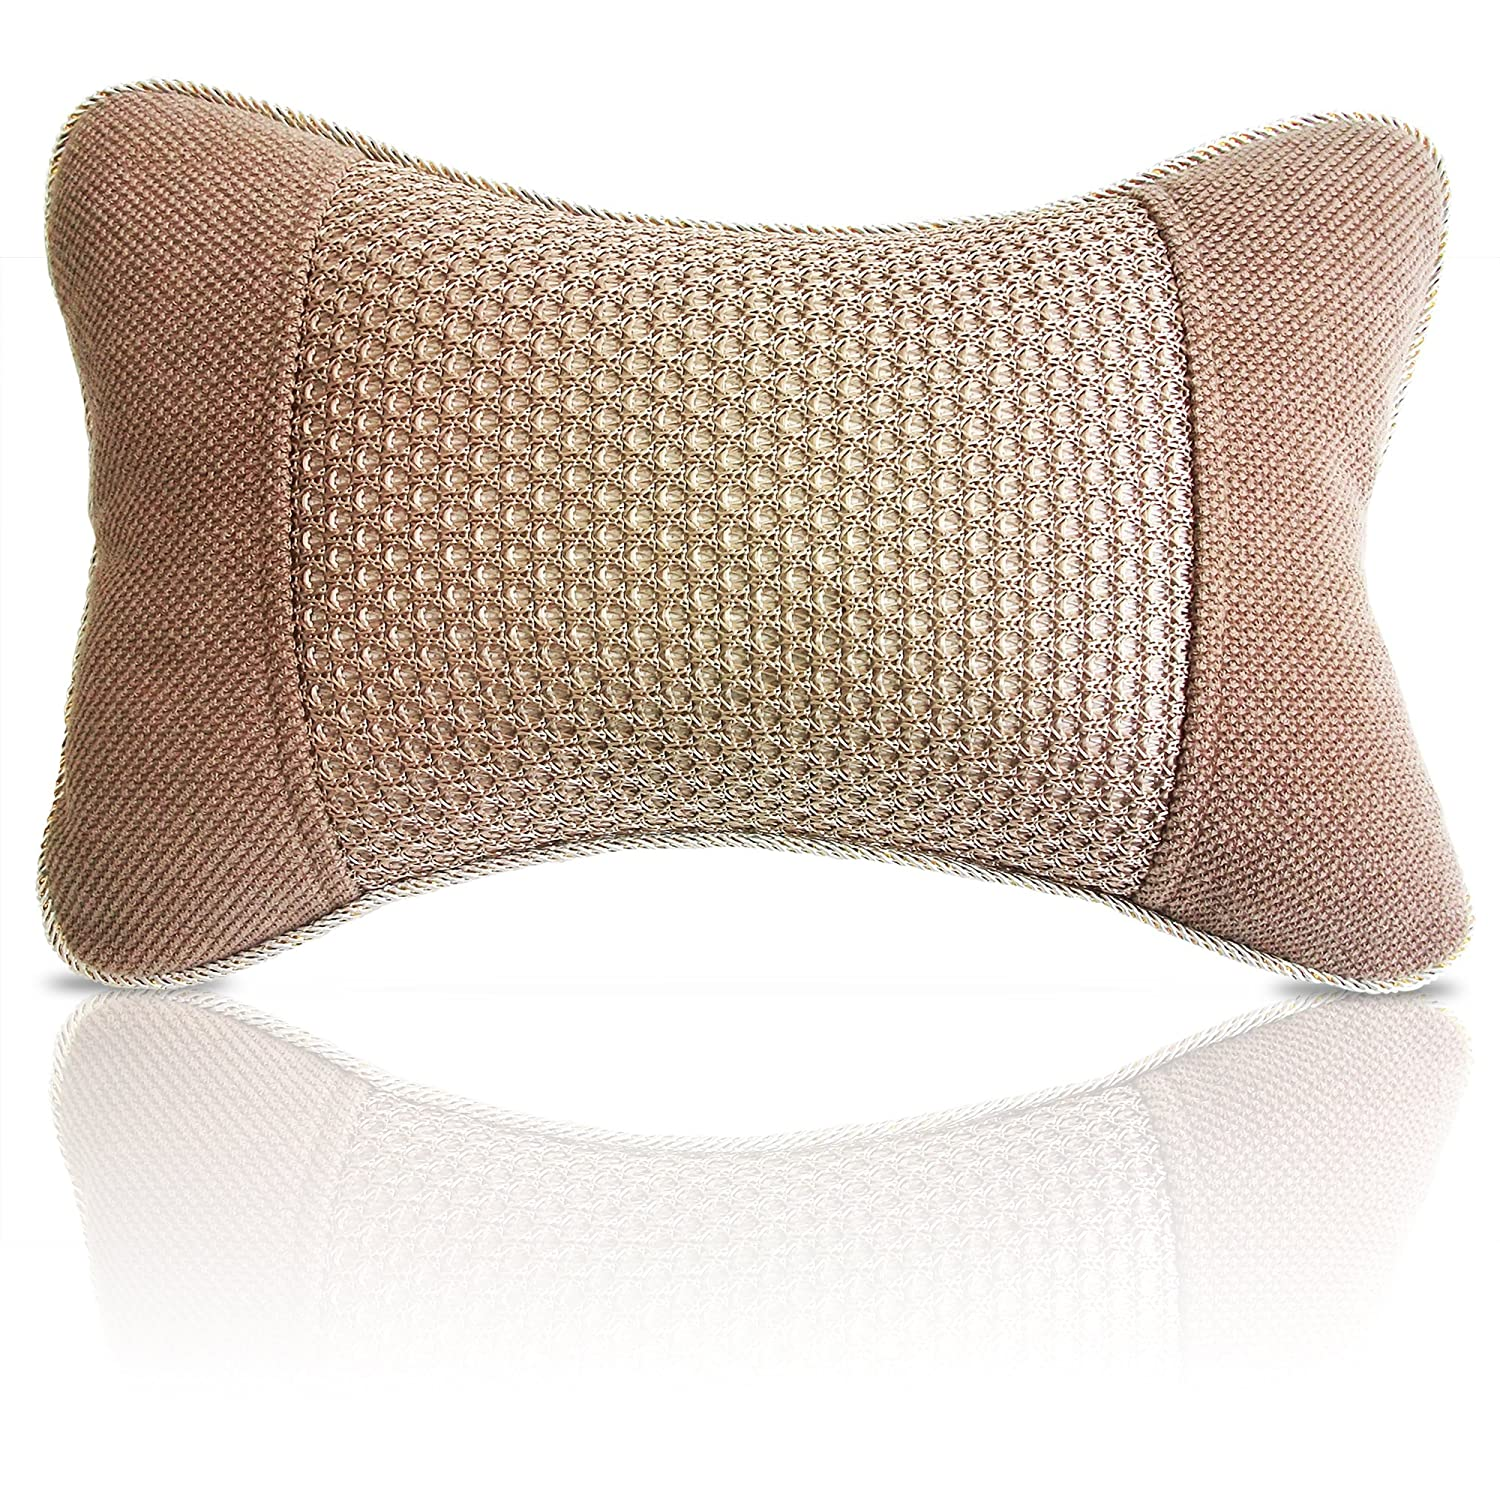 dot therapeutic detail gold pillows and place throw chiropractic anthro threshold pillow polka foil the